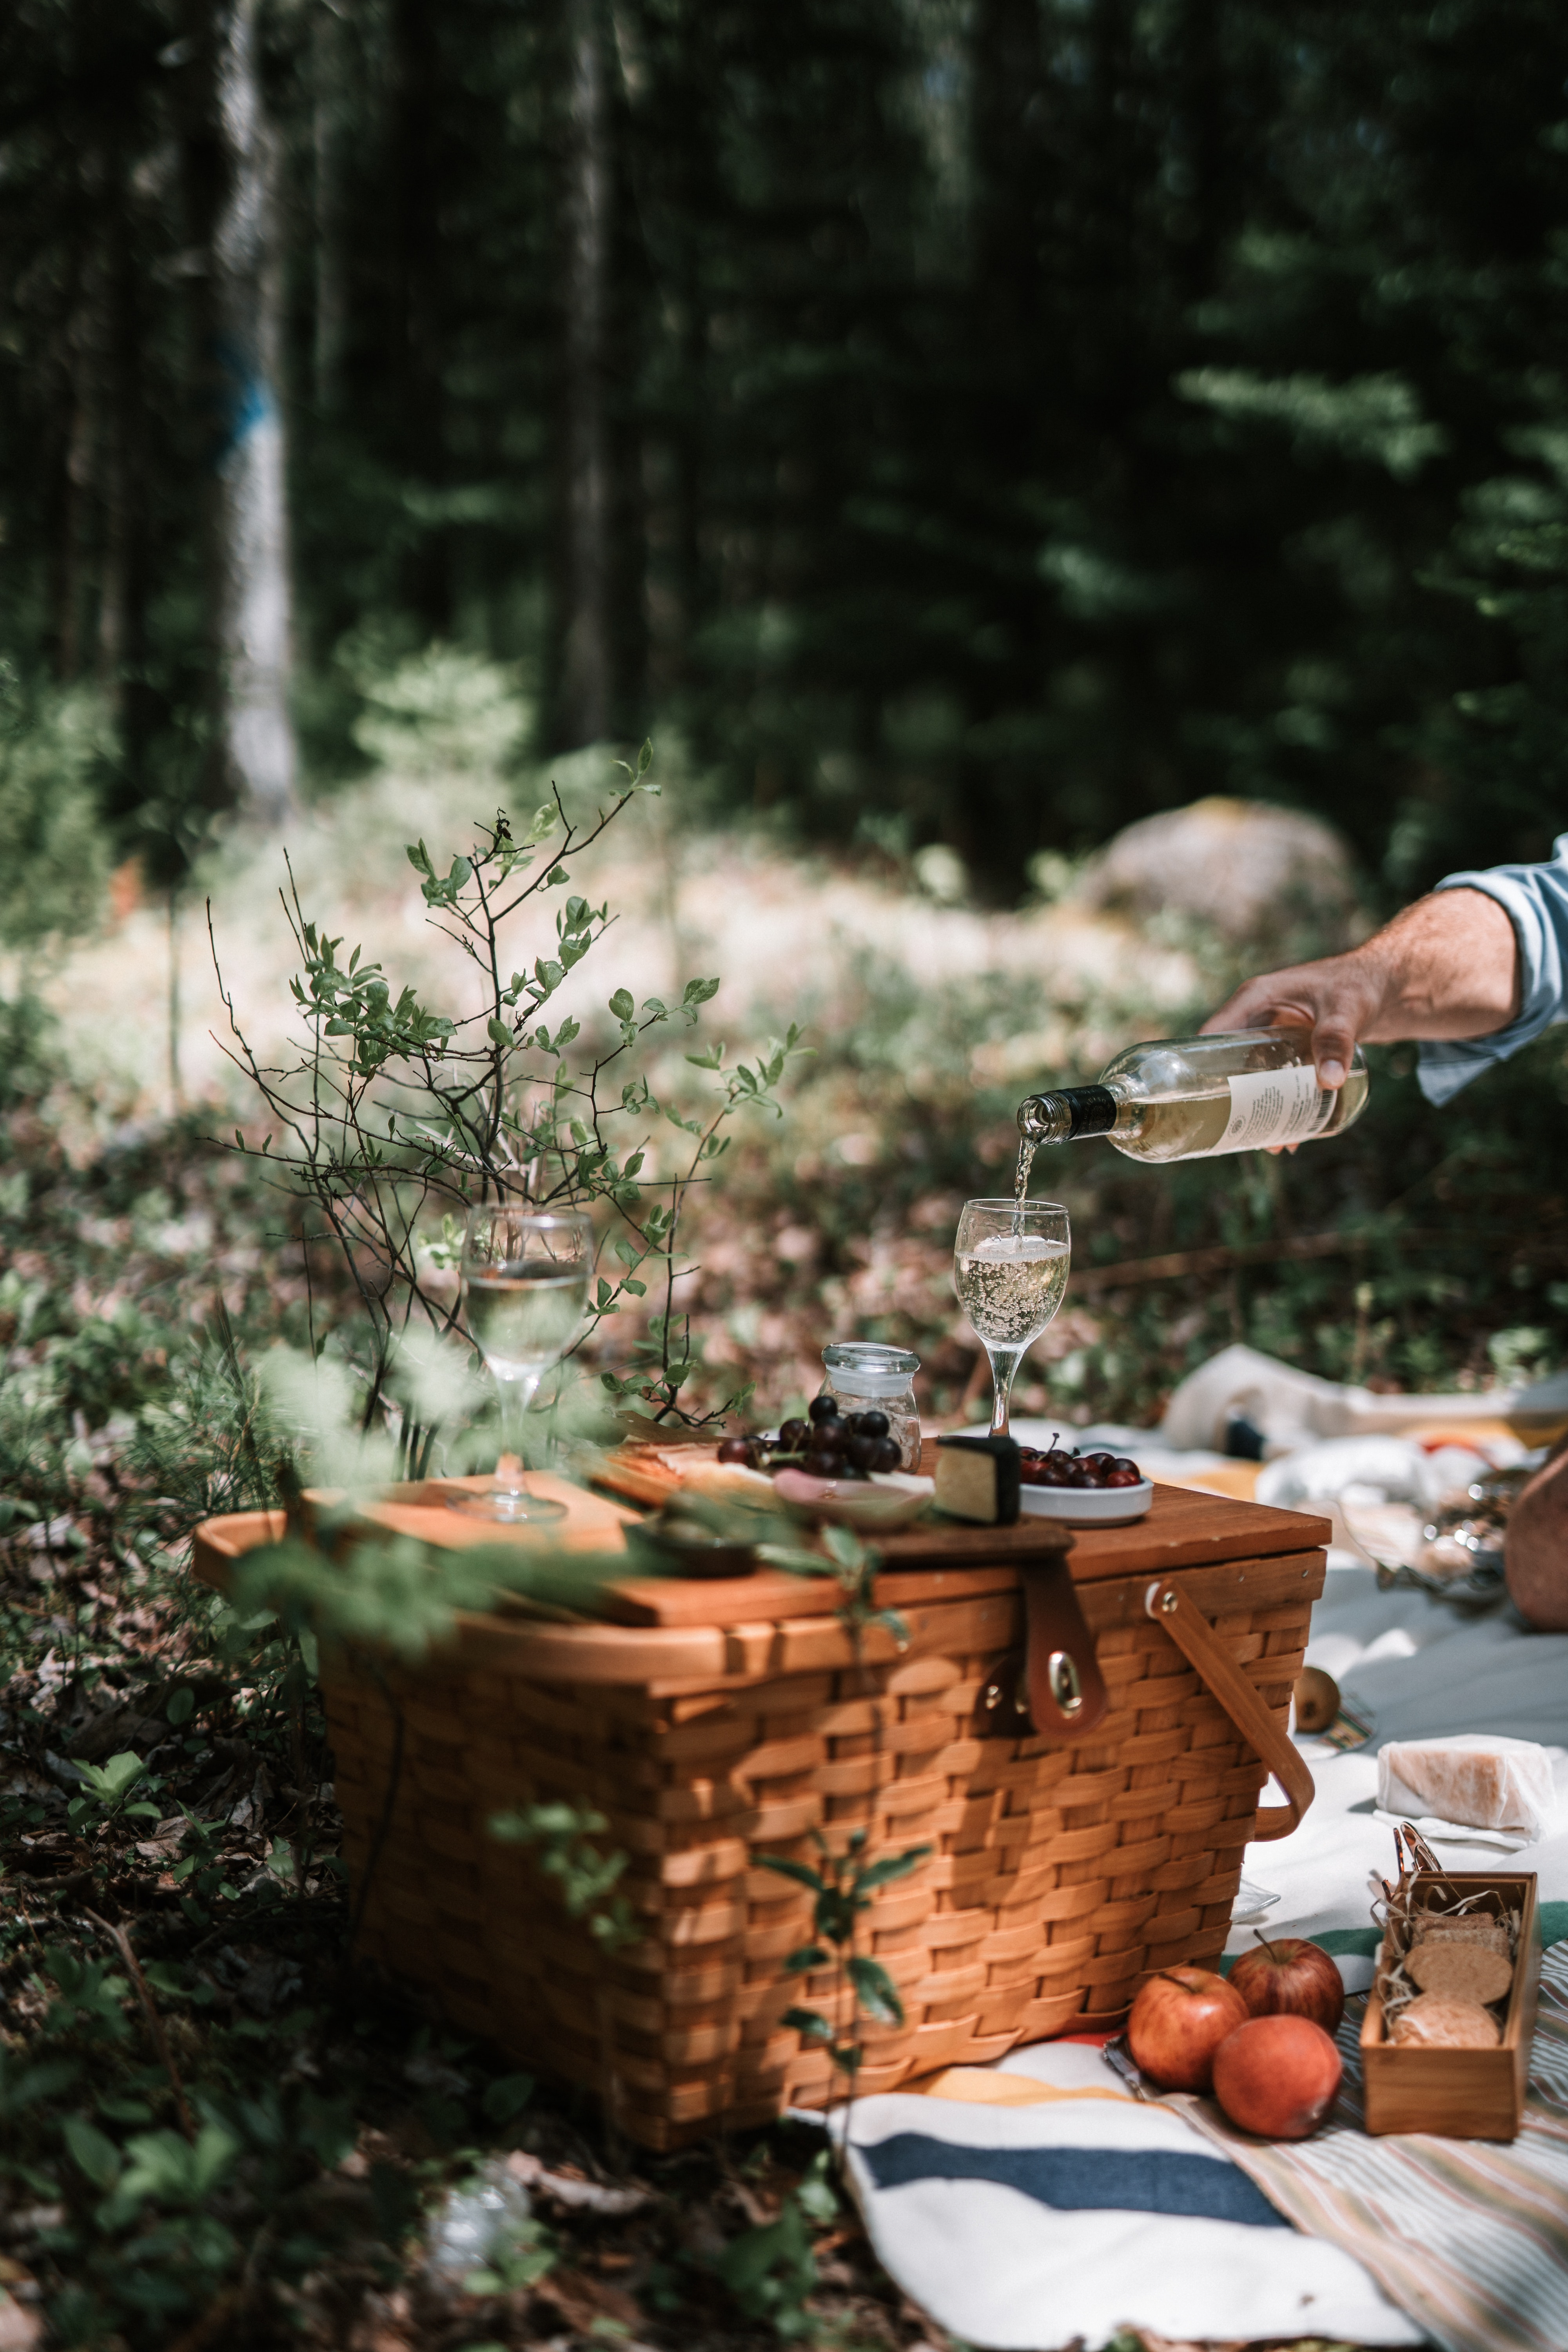 Picnic basket set in a forest setting